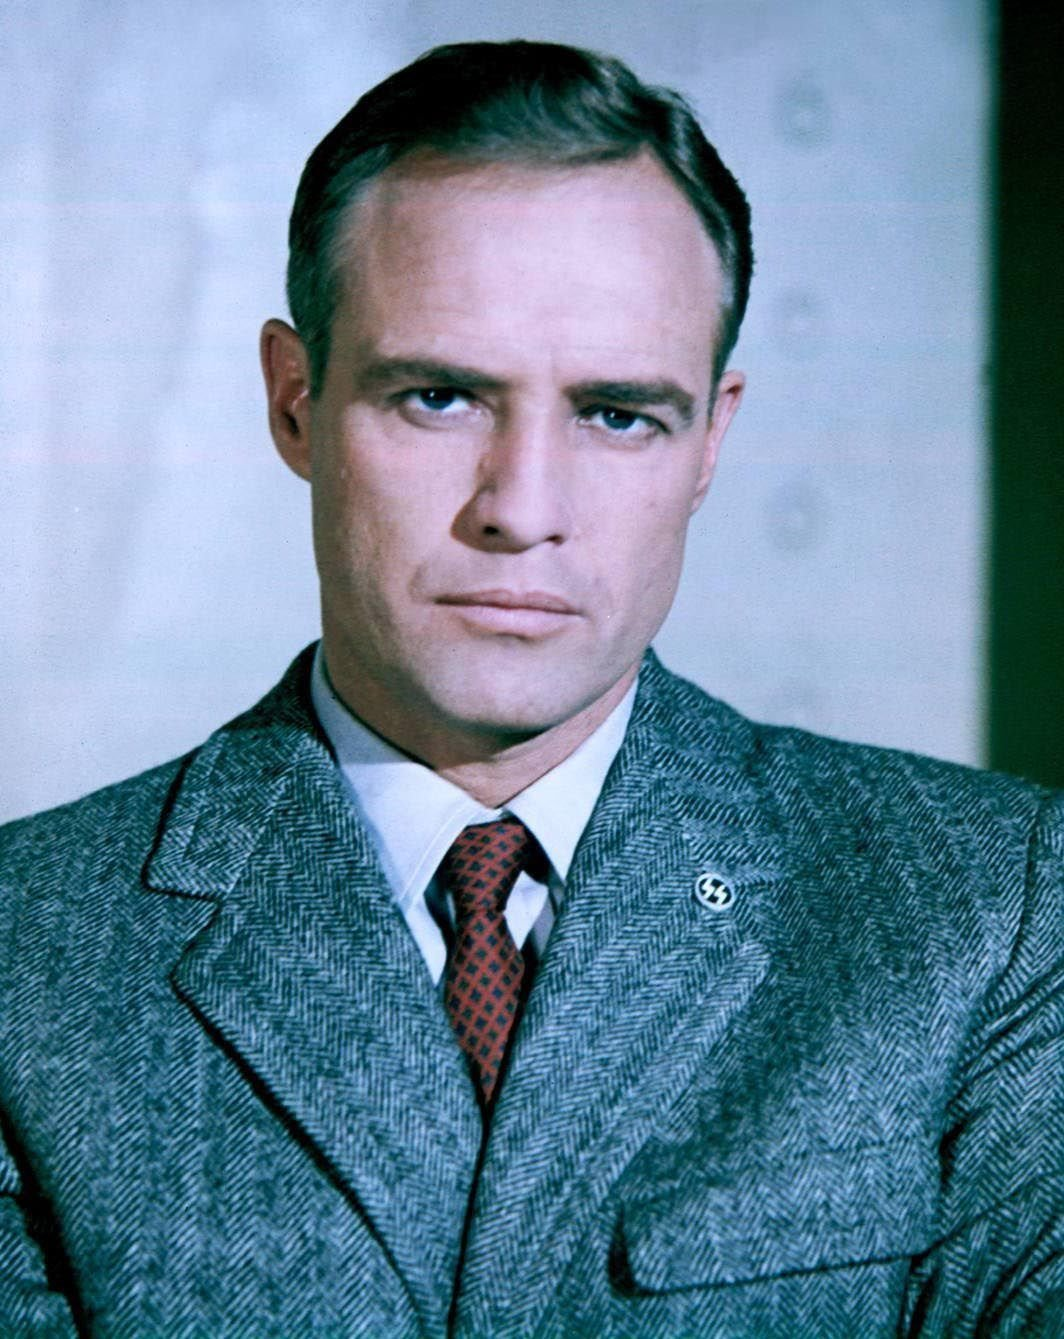 American Actor Marlon Brando,1967. | Source: Getty Images